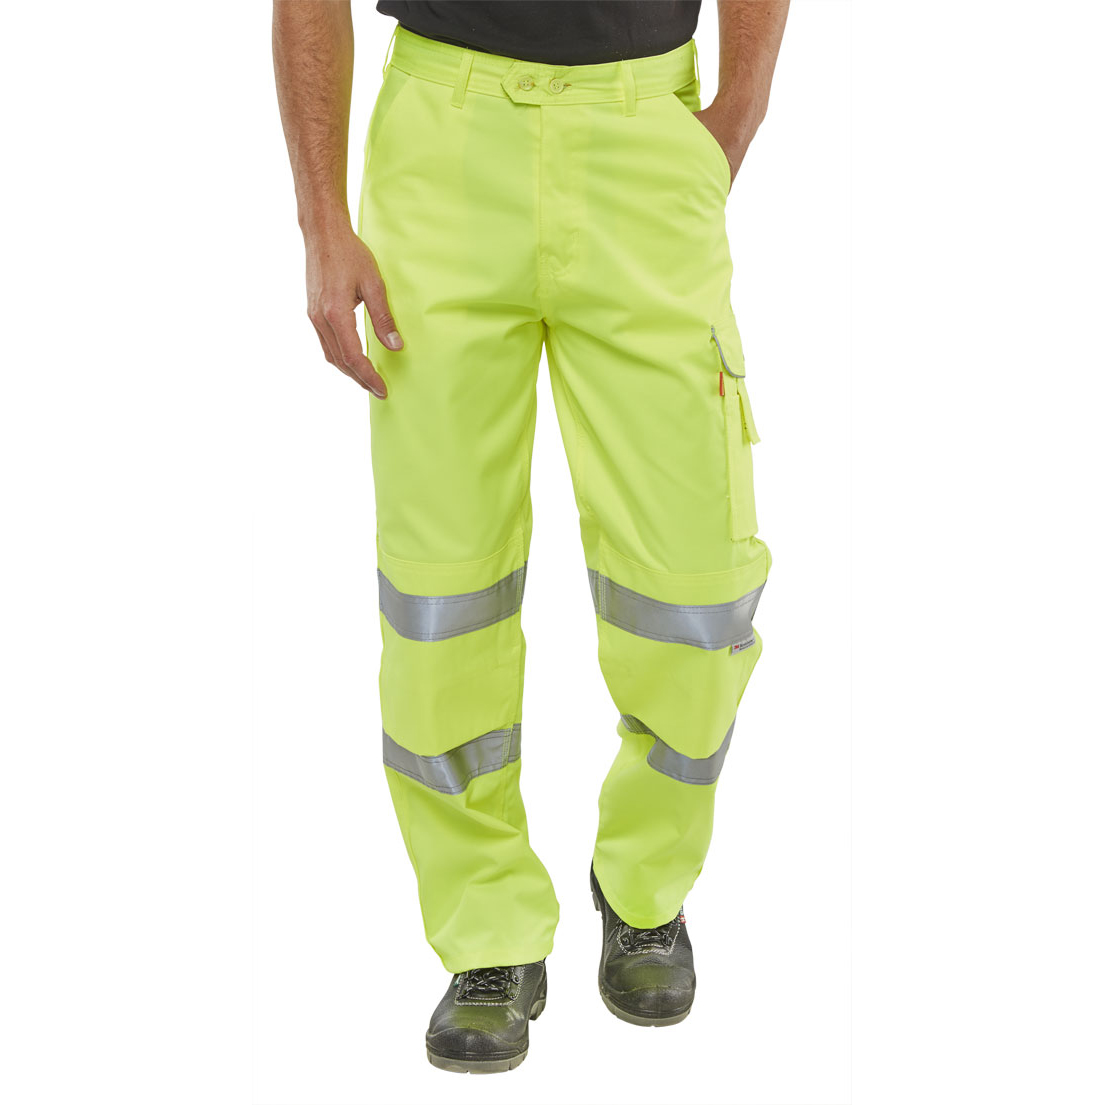 BSeen Trousers Polycotton Hi-Vis EN471 Saturn Yellow 46 Long Ref PCTENSY46T *Up to 3 Day Leadtime*